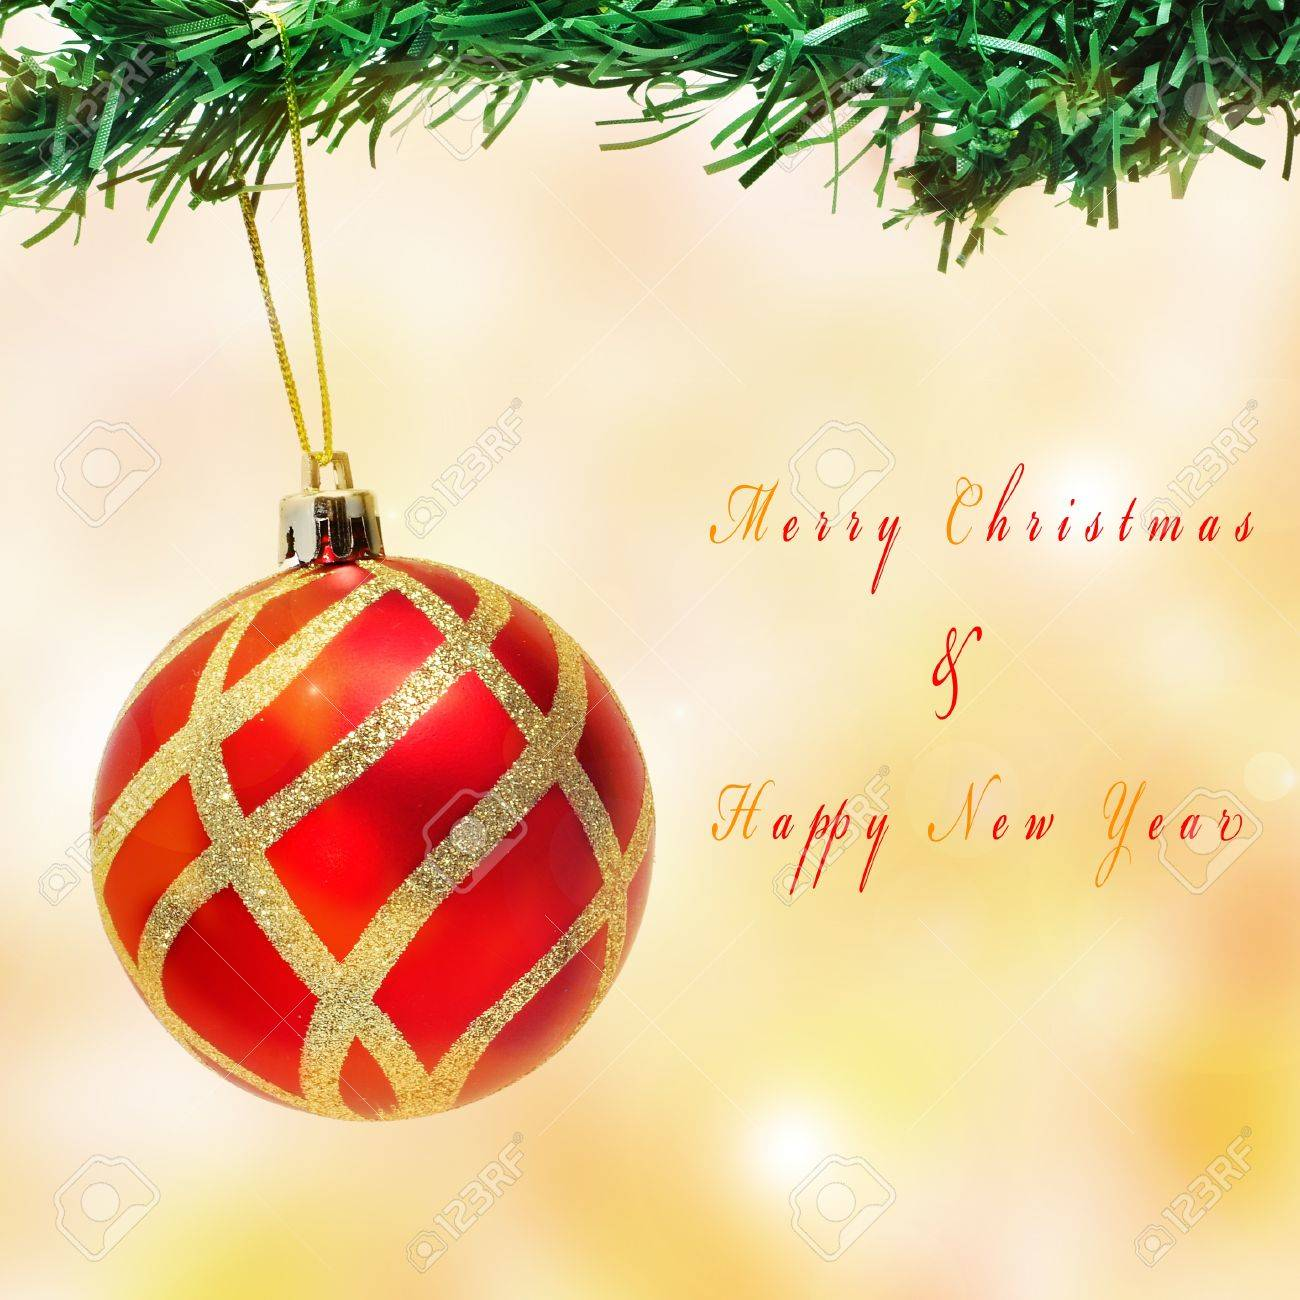 a christmas ball hanging on a christmas tree and sentence Merry Christmas and Happy New Year Stock Photo - 11231854